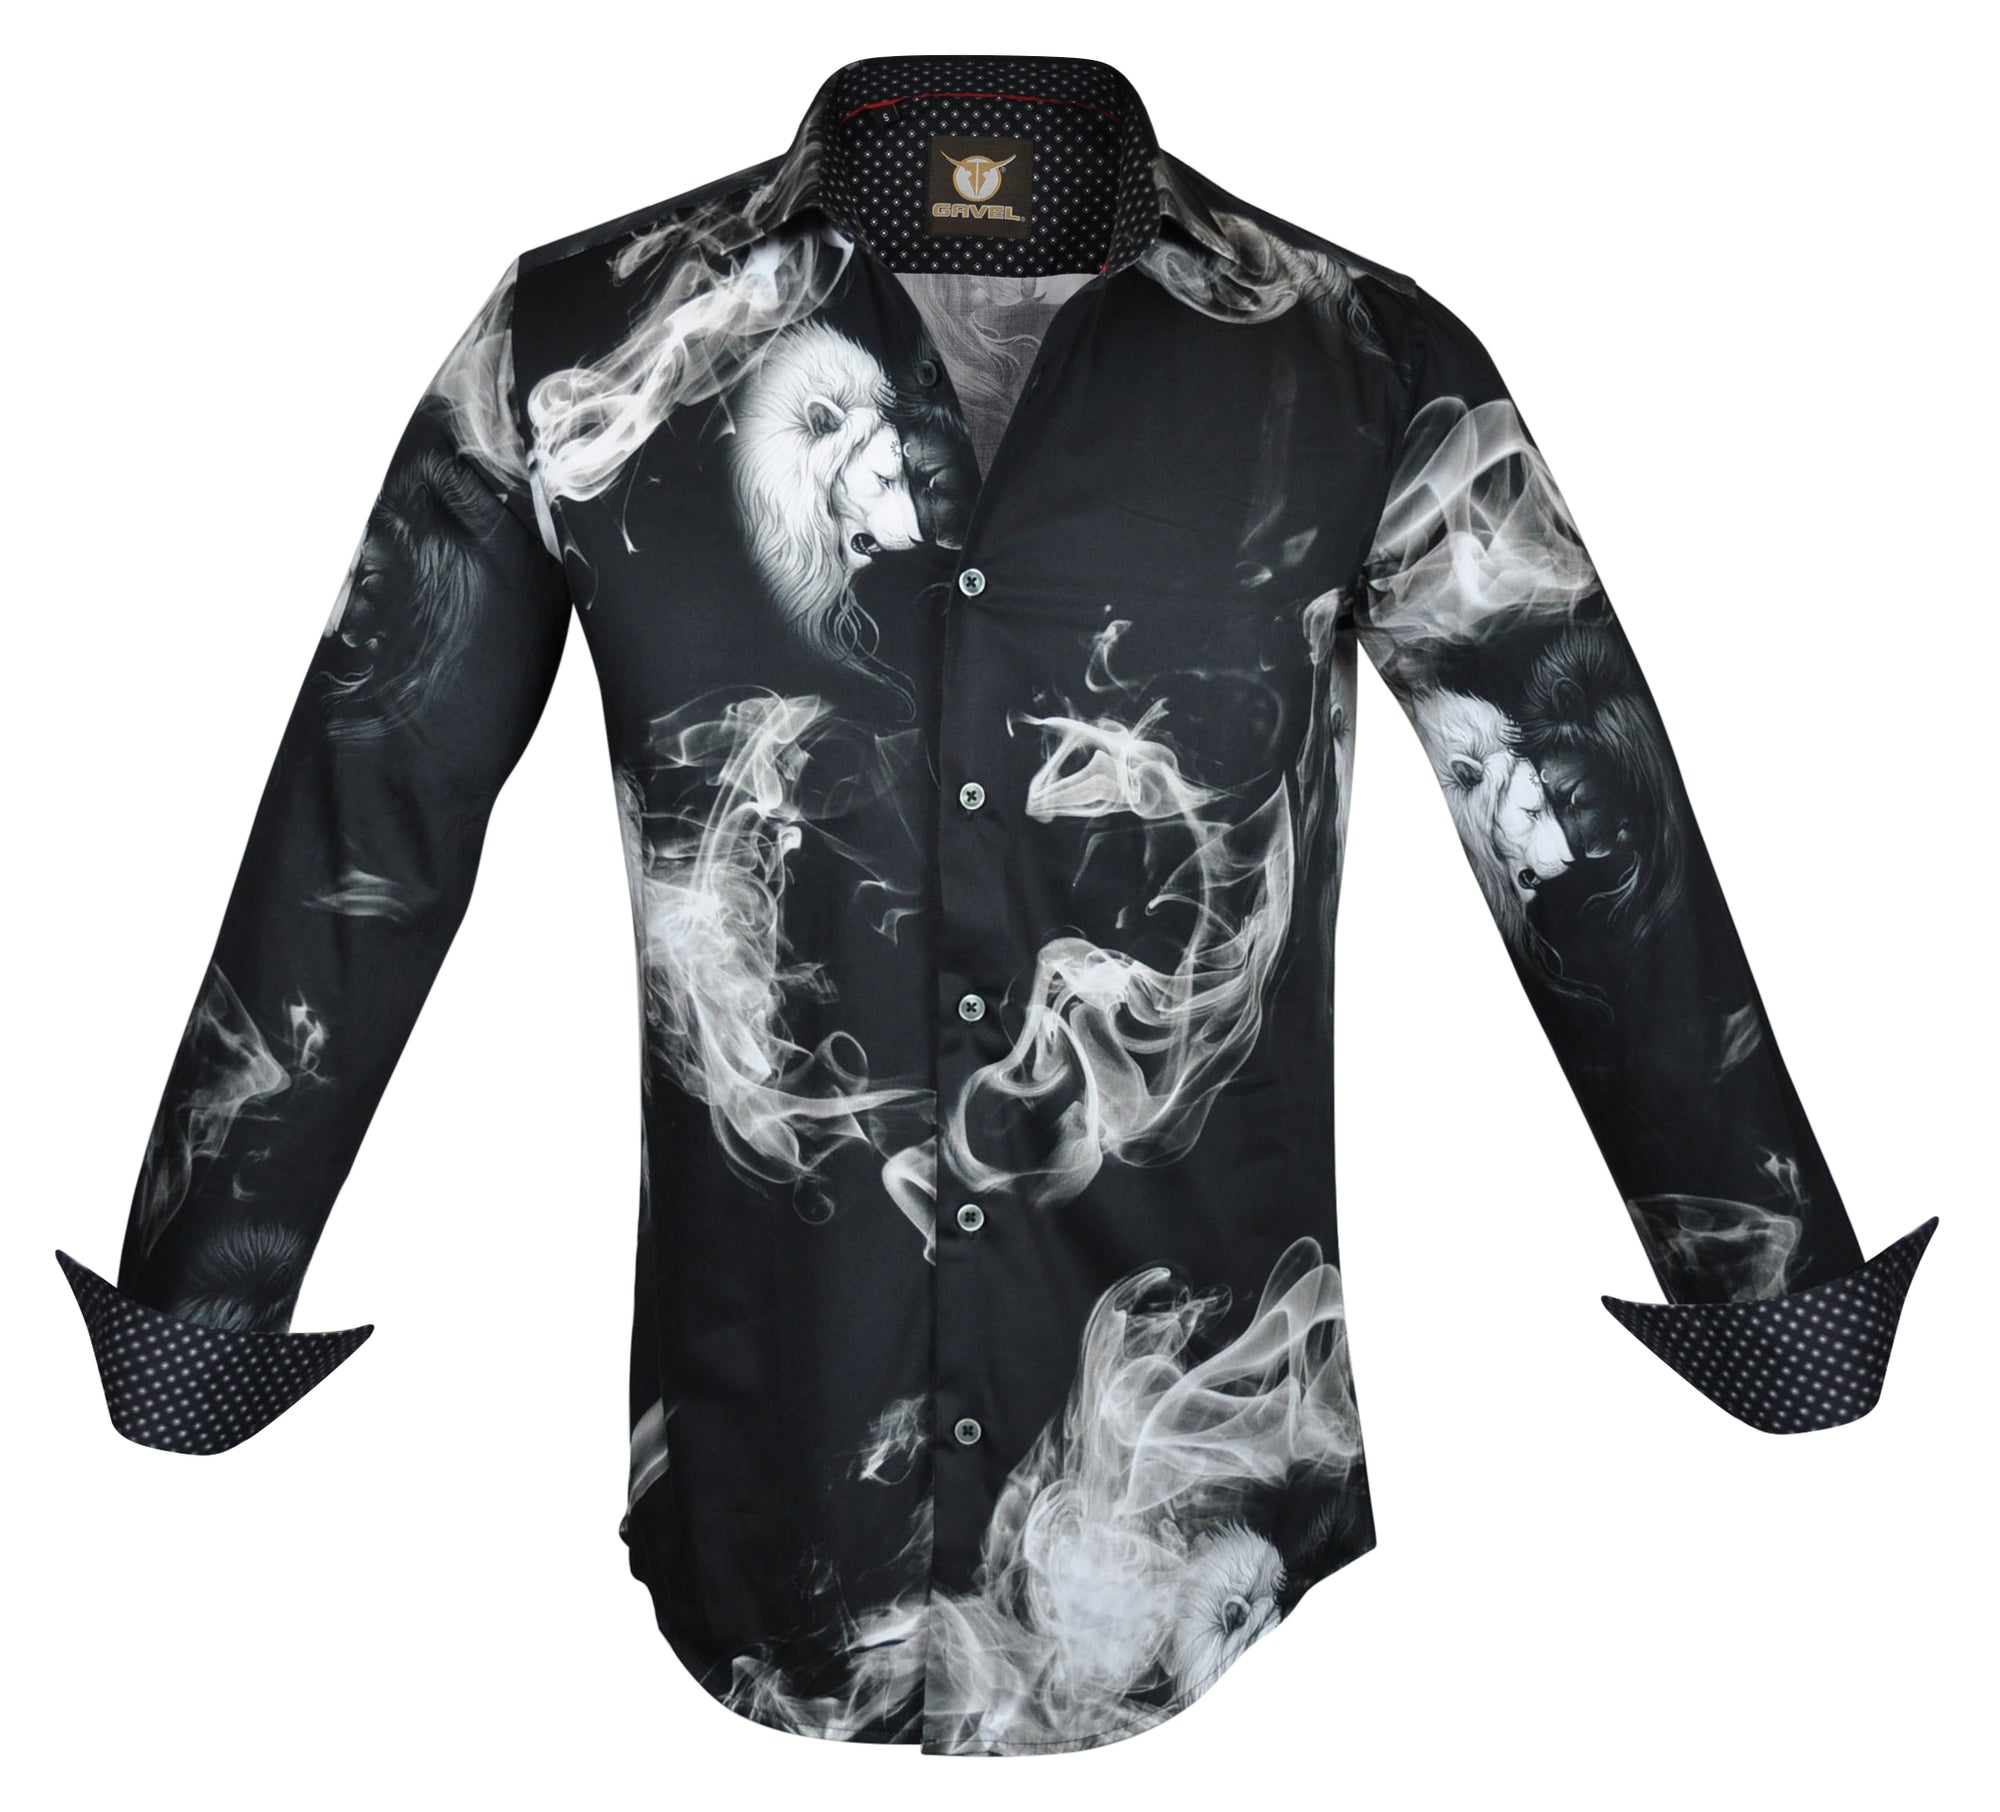 Gavel Heart Of a Lion Black Fashion Dress Shirt